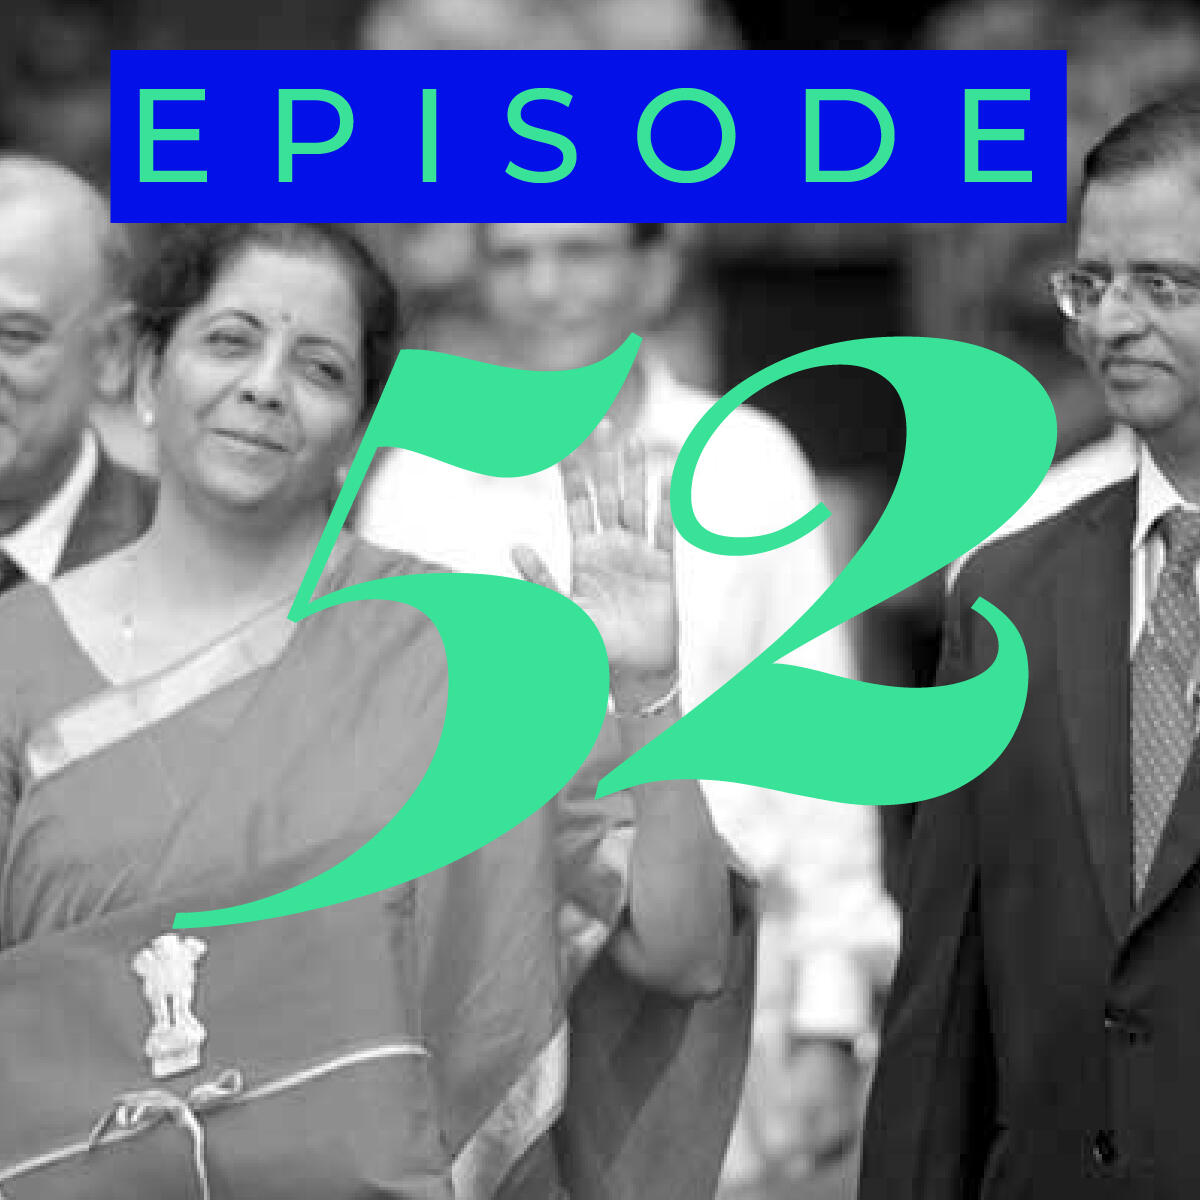 52: Union budget, Emergency train stop, Indonesian lewd caller